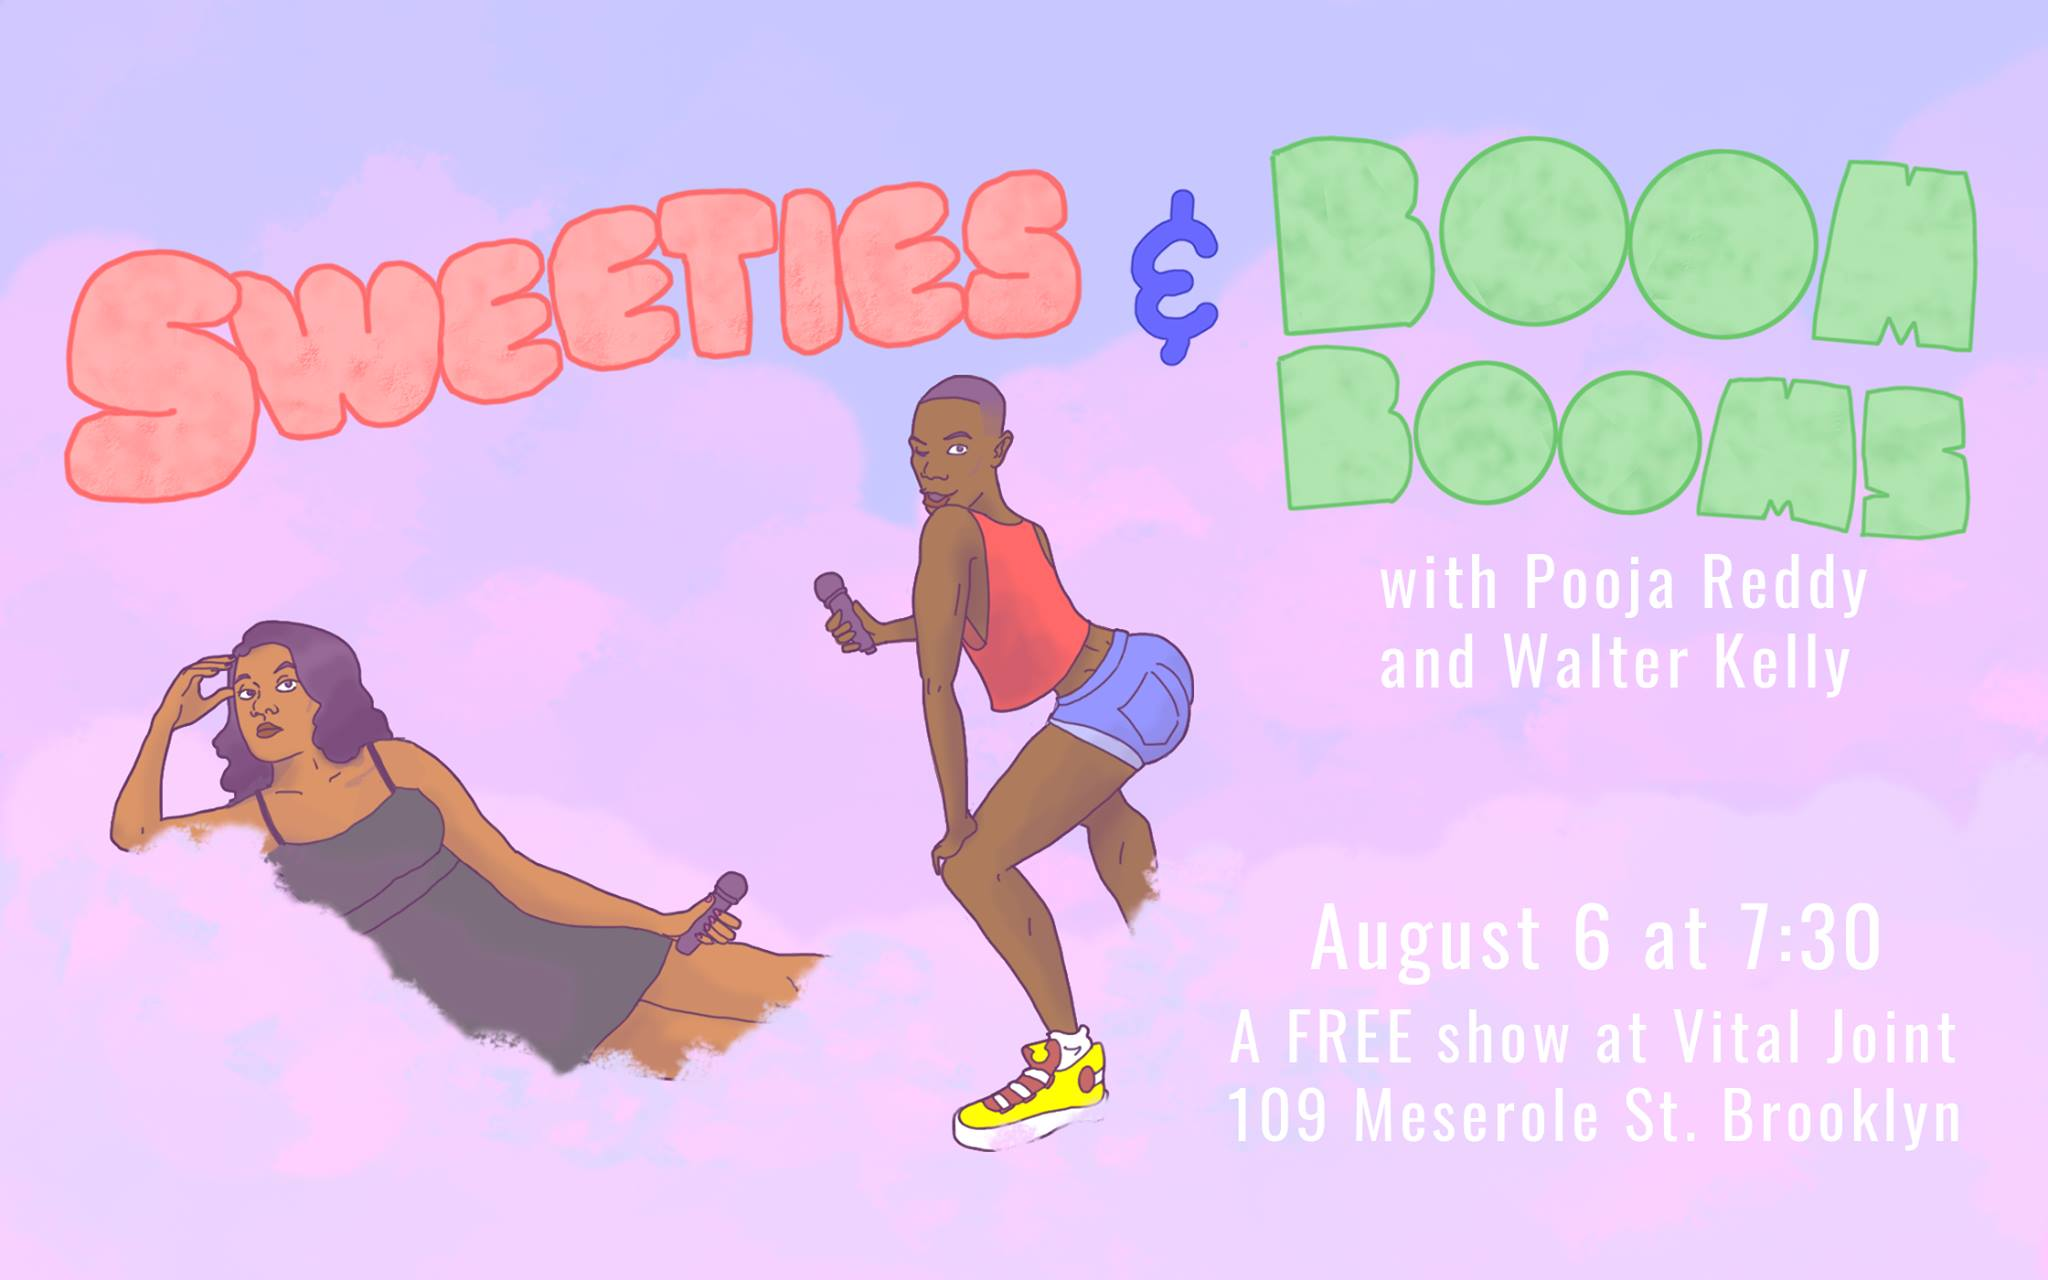 Sweeties and Boom Booms with Pooja Reddy and Walter Kelly